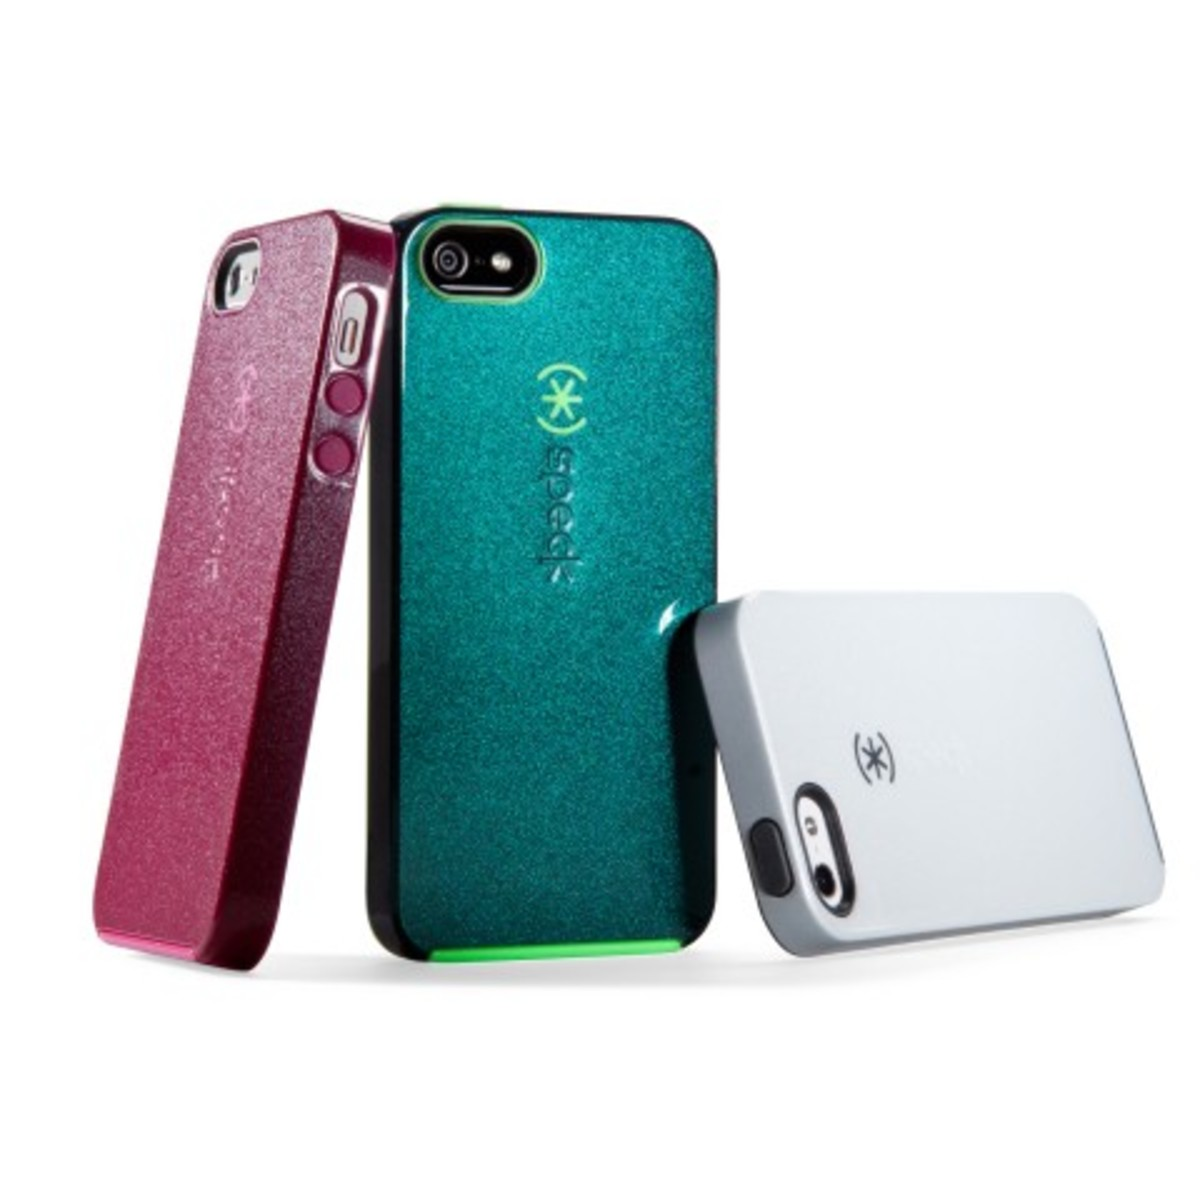 gemshell iphone 5s #9